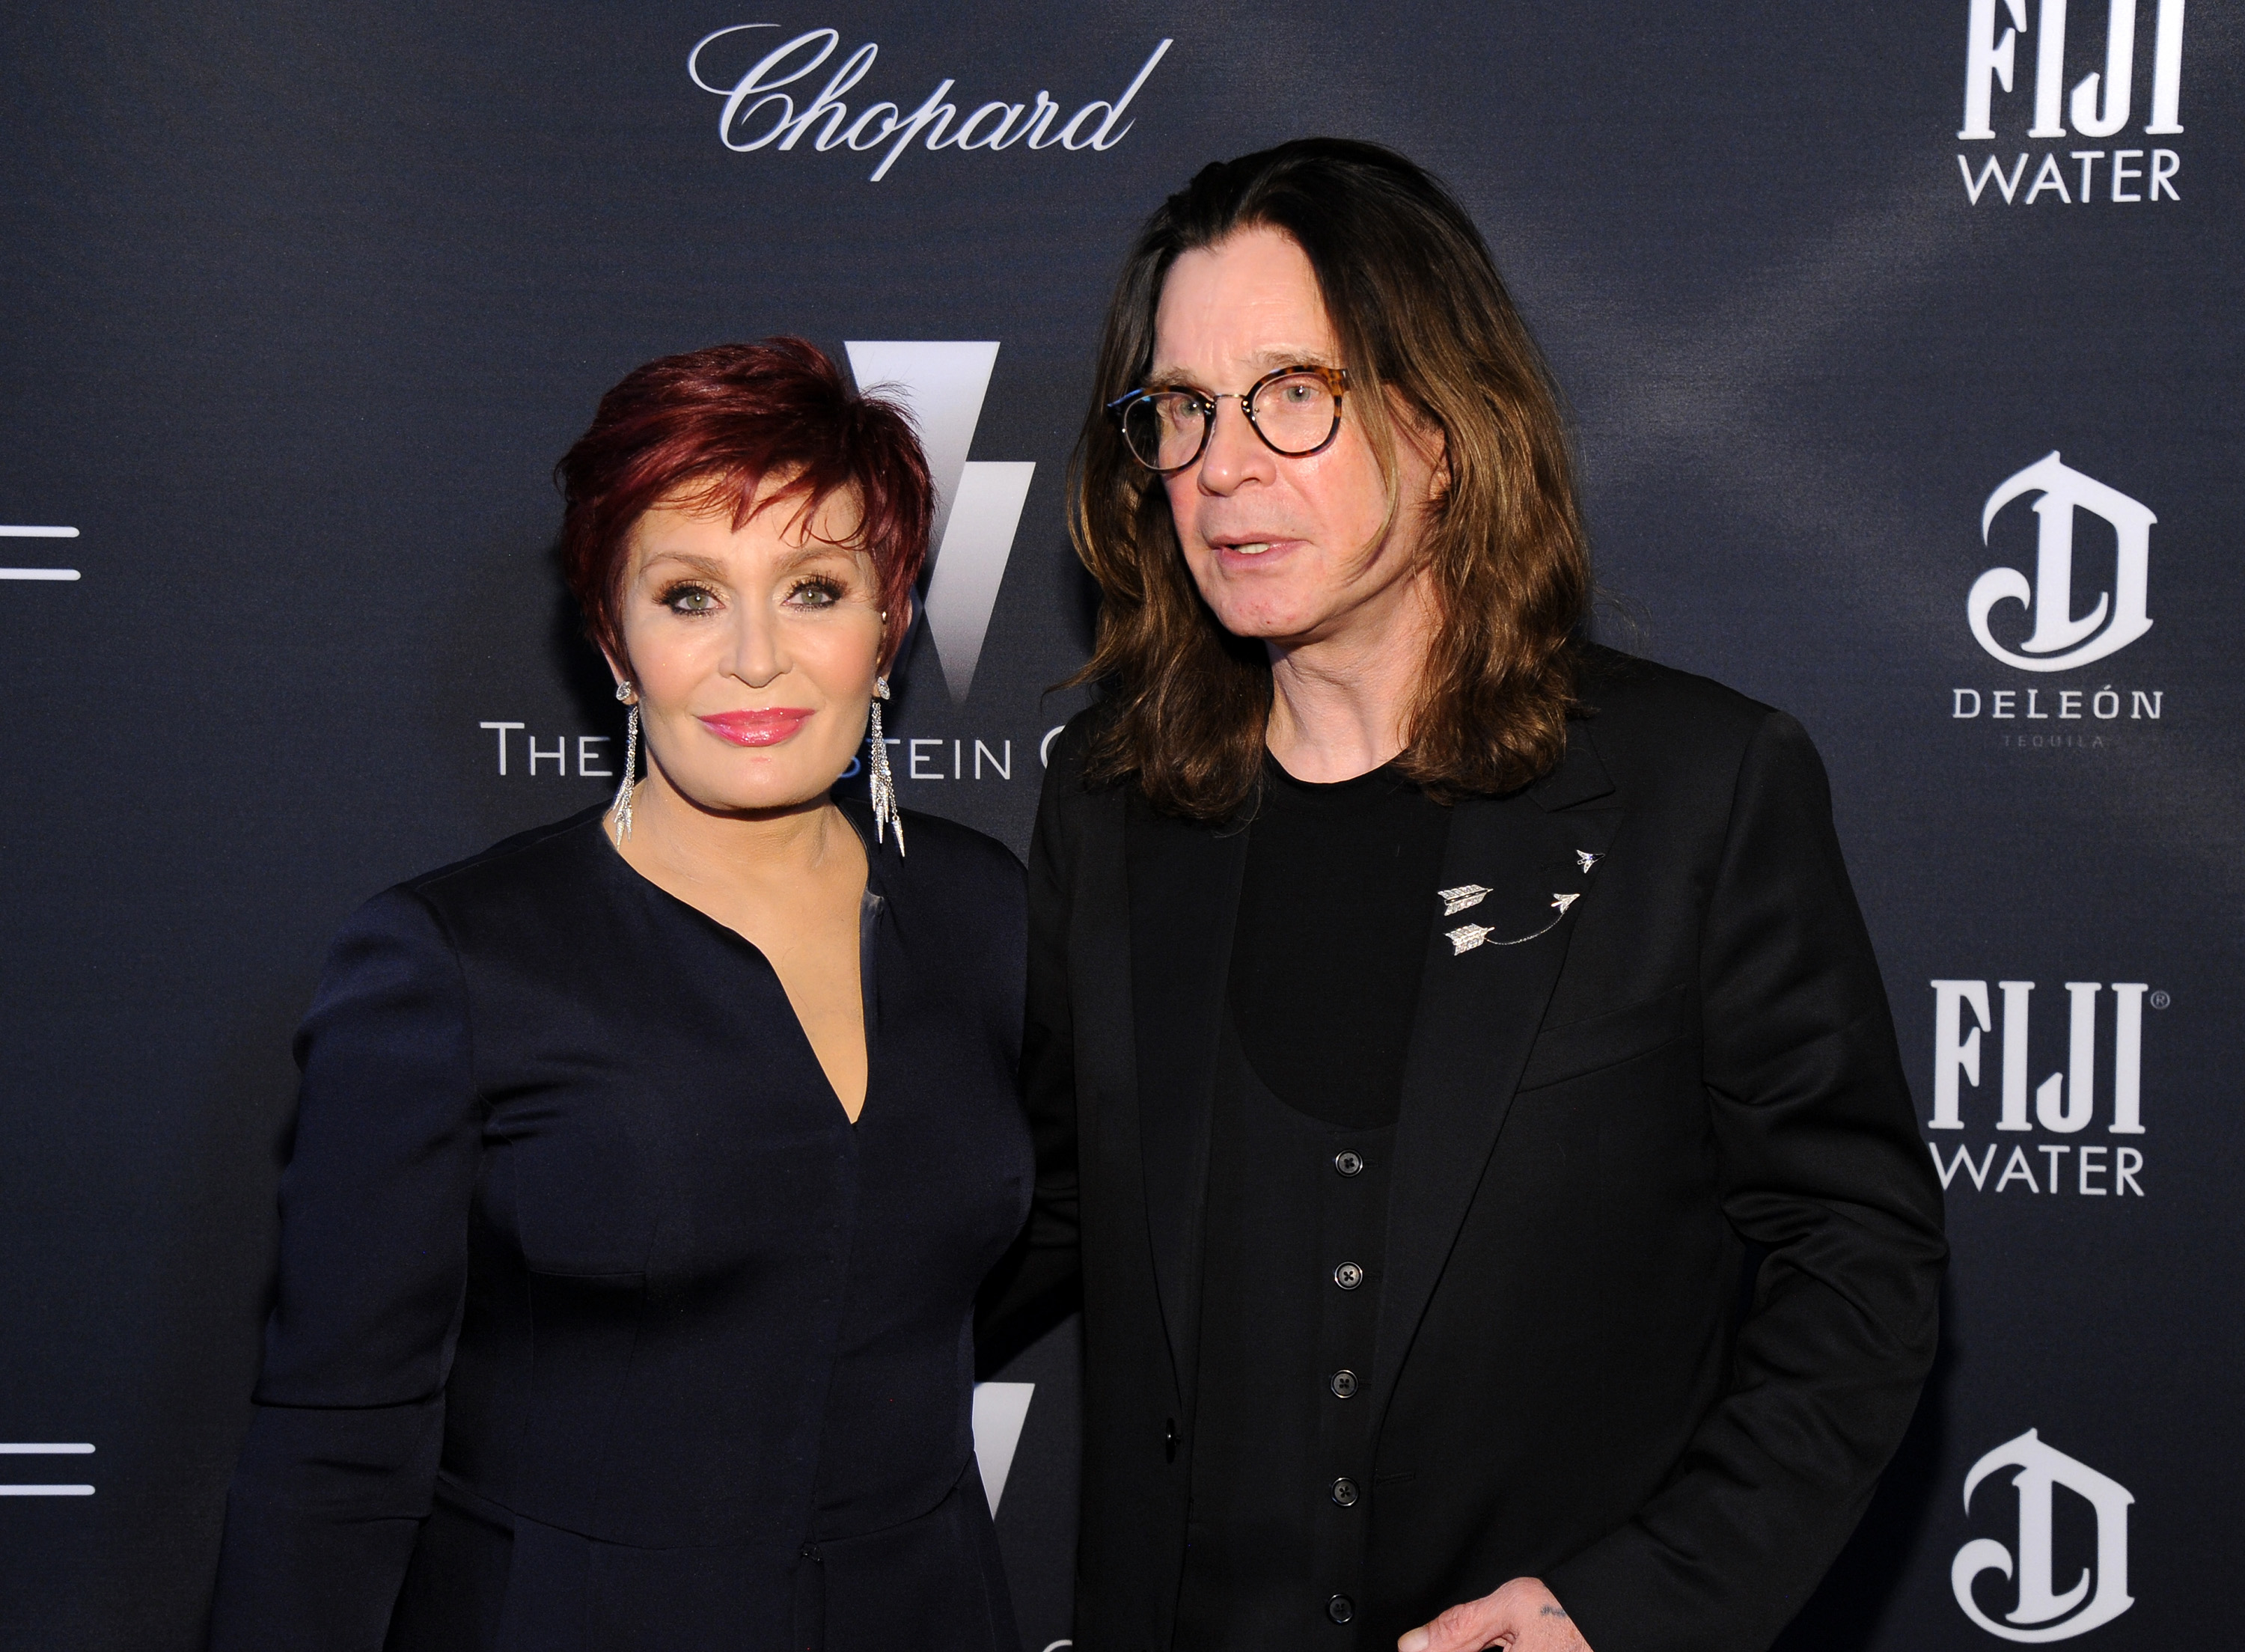 LOS ANGELES, CA - FEBRUARY 21: TV personality Sharon Osbourne and recording artist Ozzy Osbourne attend The Weinstein Company's Academy Awards Nominees Dinner in partnership with Chopard, DeLeon Tequila, FIJI Water and MAC Cosmetics on February 21, 2015 in Los Angeles, California. (Photo by Angela Weiss/Getty Images for FIJI Water)